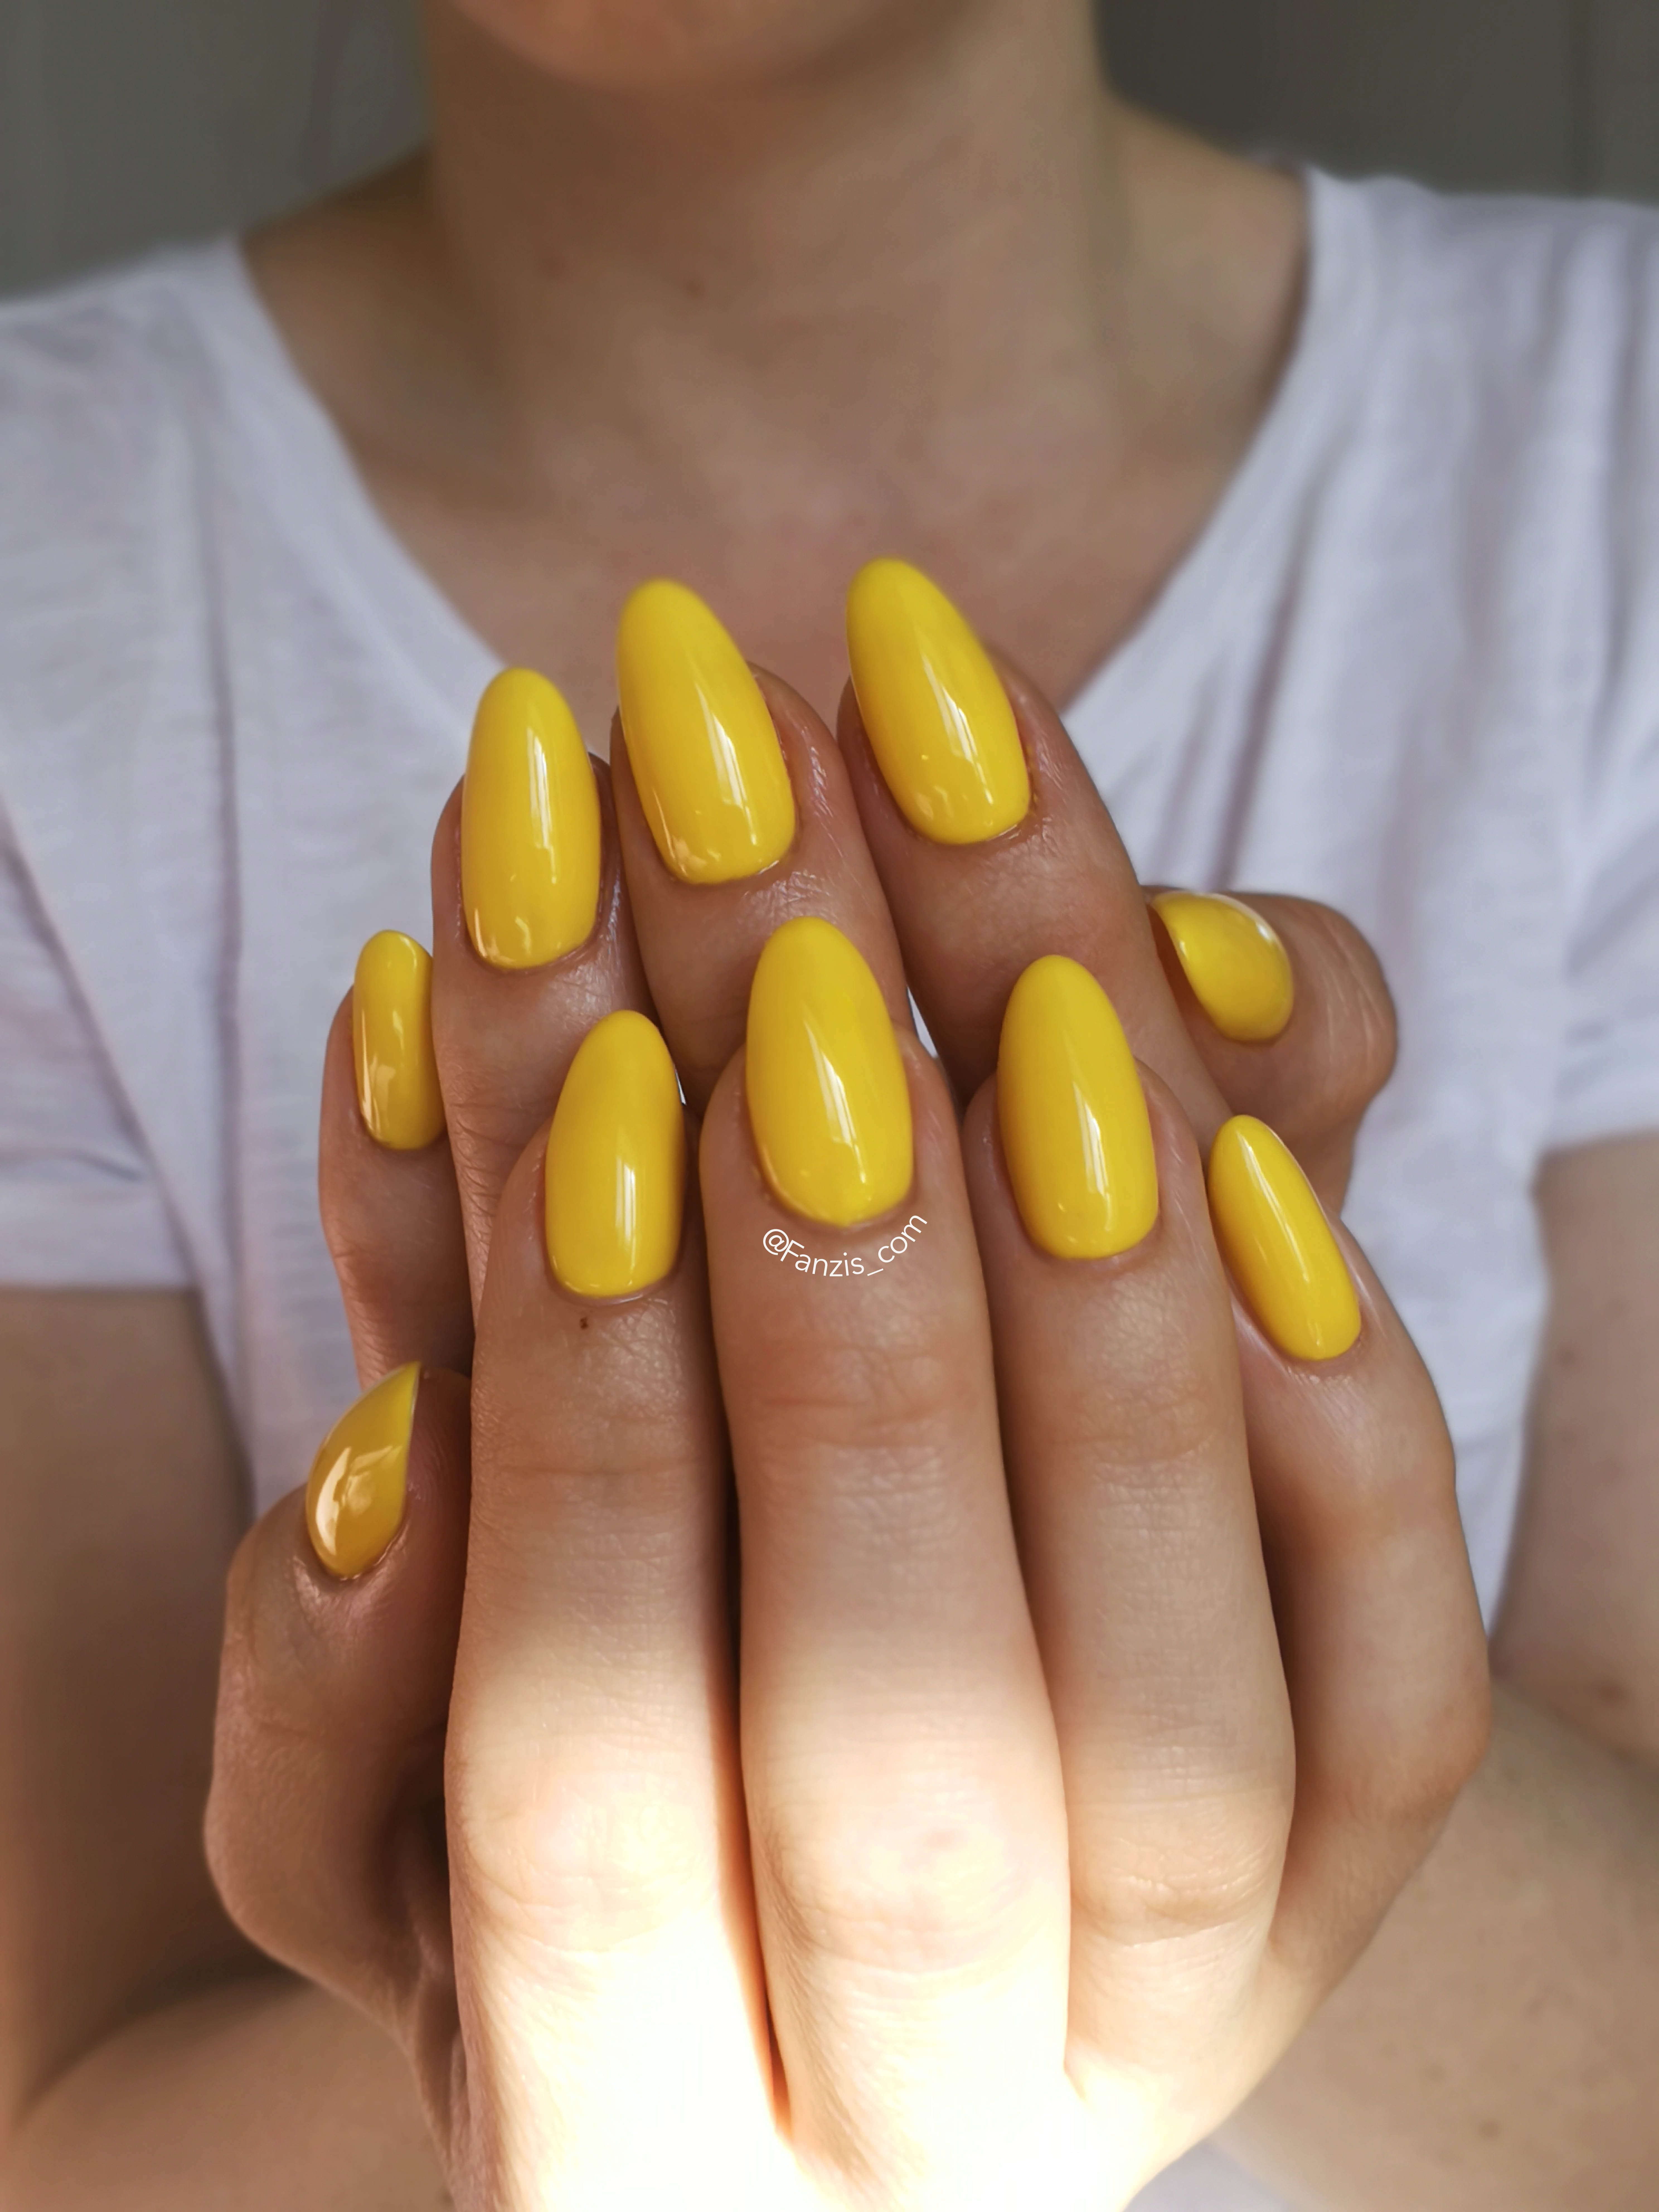 Flirtatious Nails In 2019: Mustard And White Henna Design Nails Flirtatious Nails In 2019